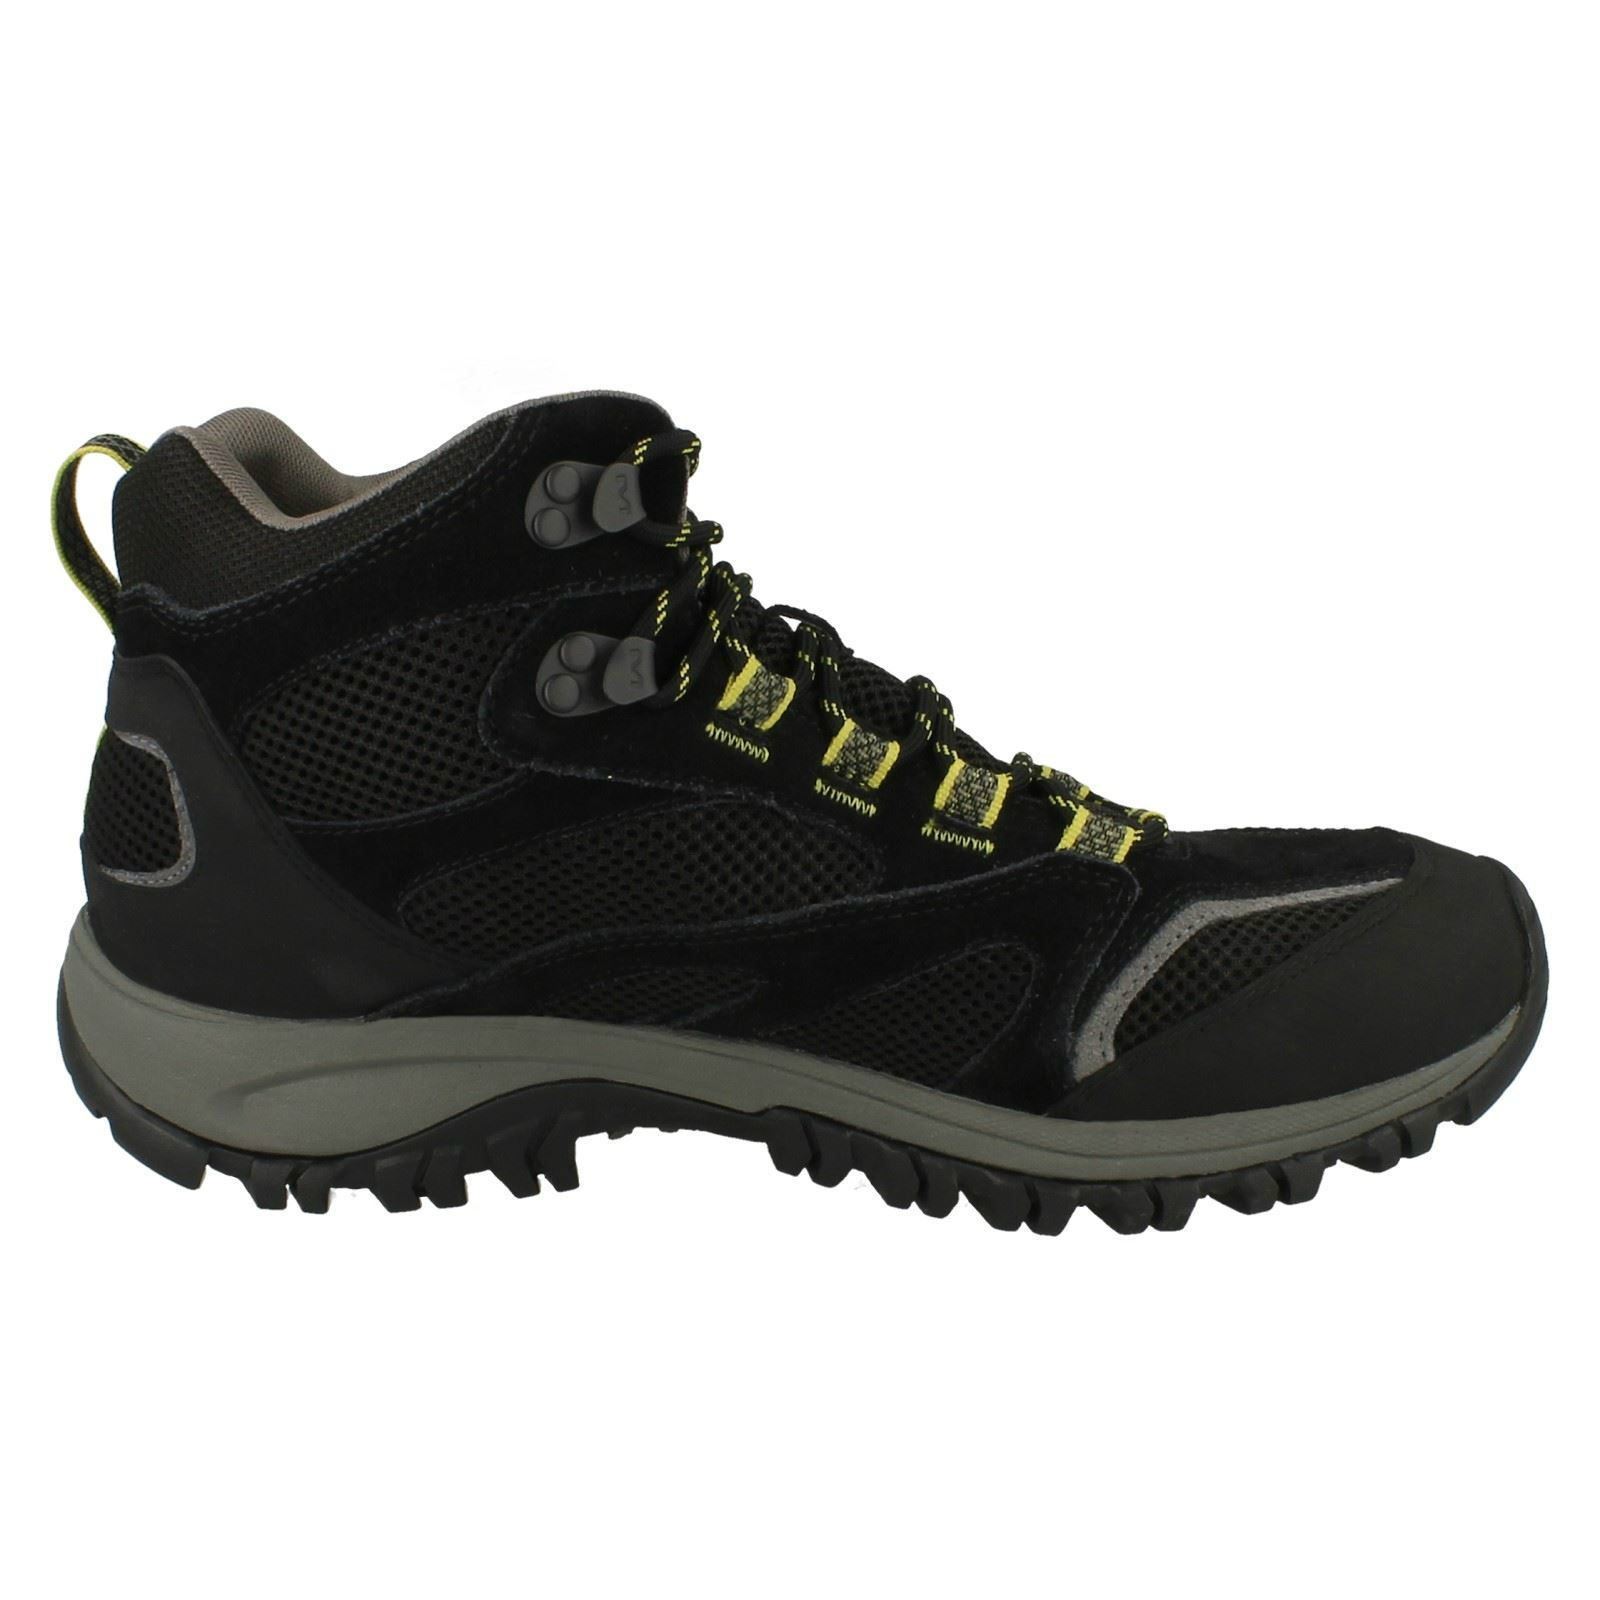 thumbnail 7 - Mens-Merrell-Waterproof-Walking-Boots-039-Phoenix-Mid-039